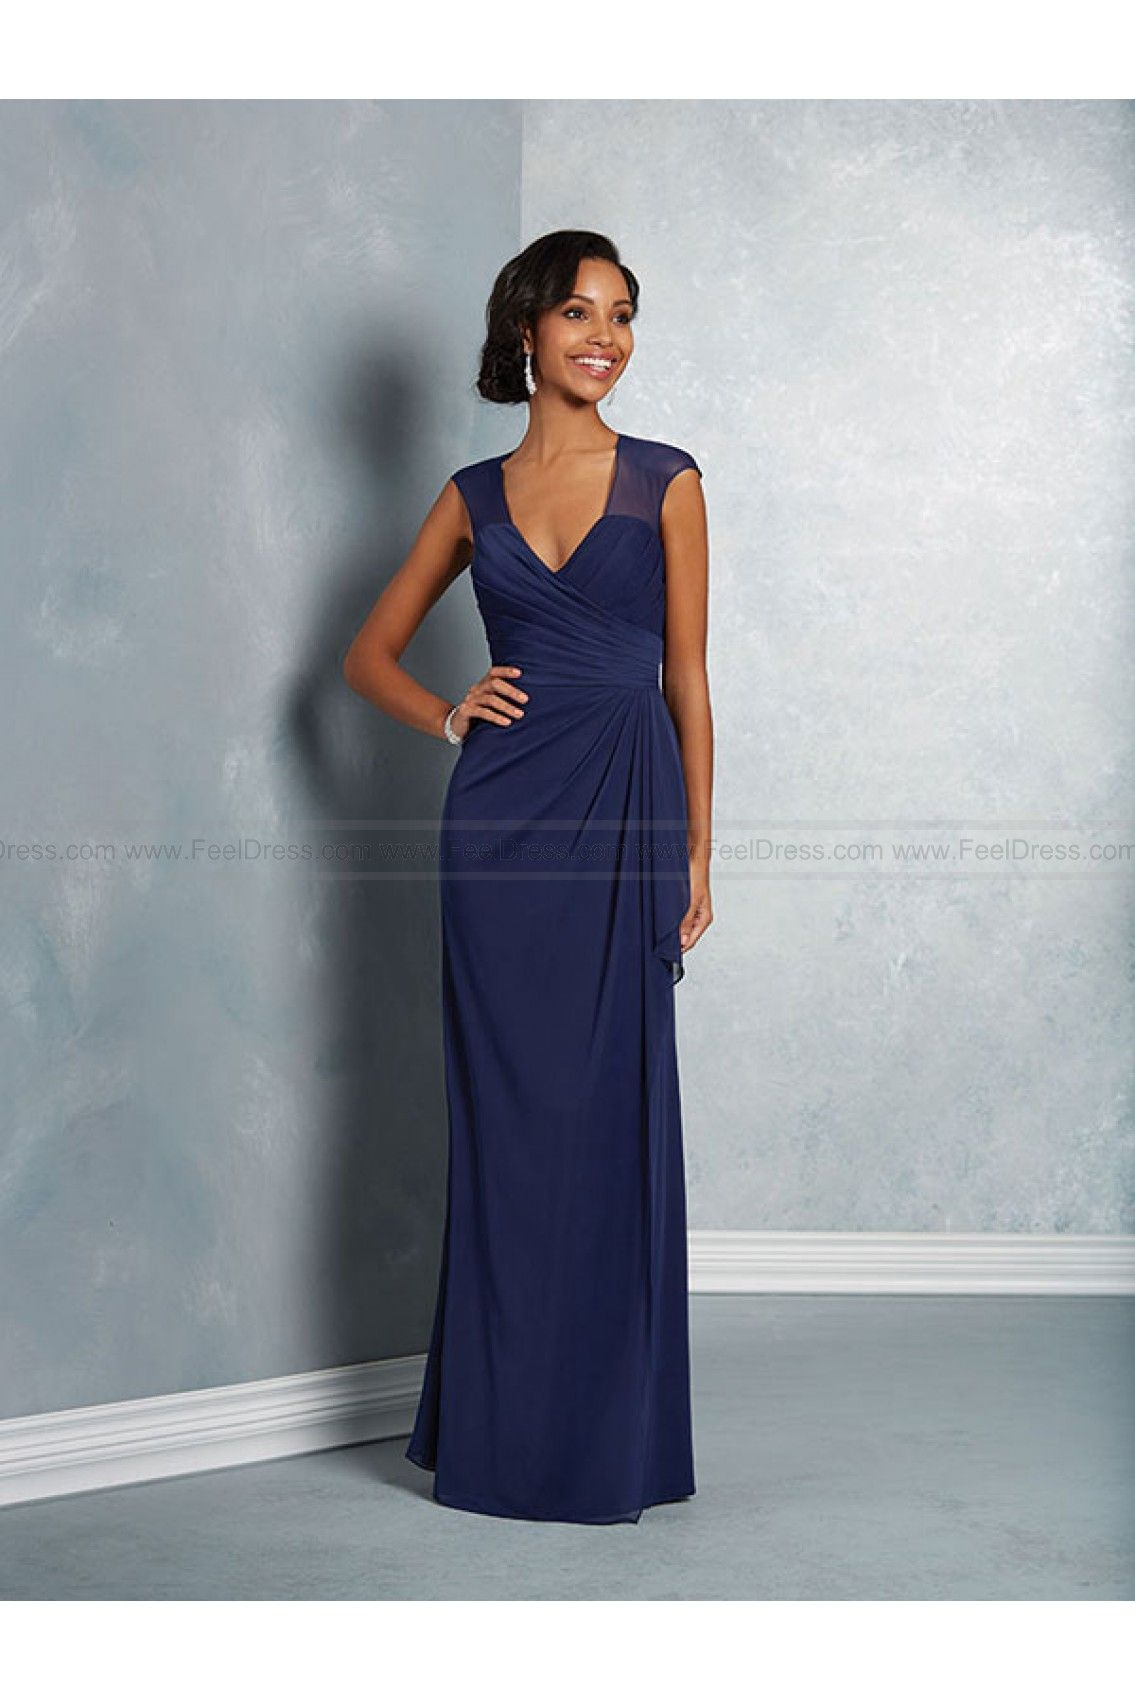 Alfred angelo bridesmaid dress style 7412 new alfred angelo alfred angelo bridesmaid dress style 7412 new ombrellifo Image collections